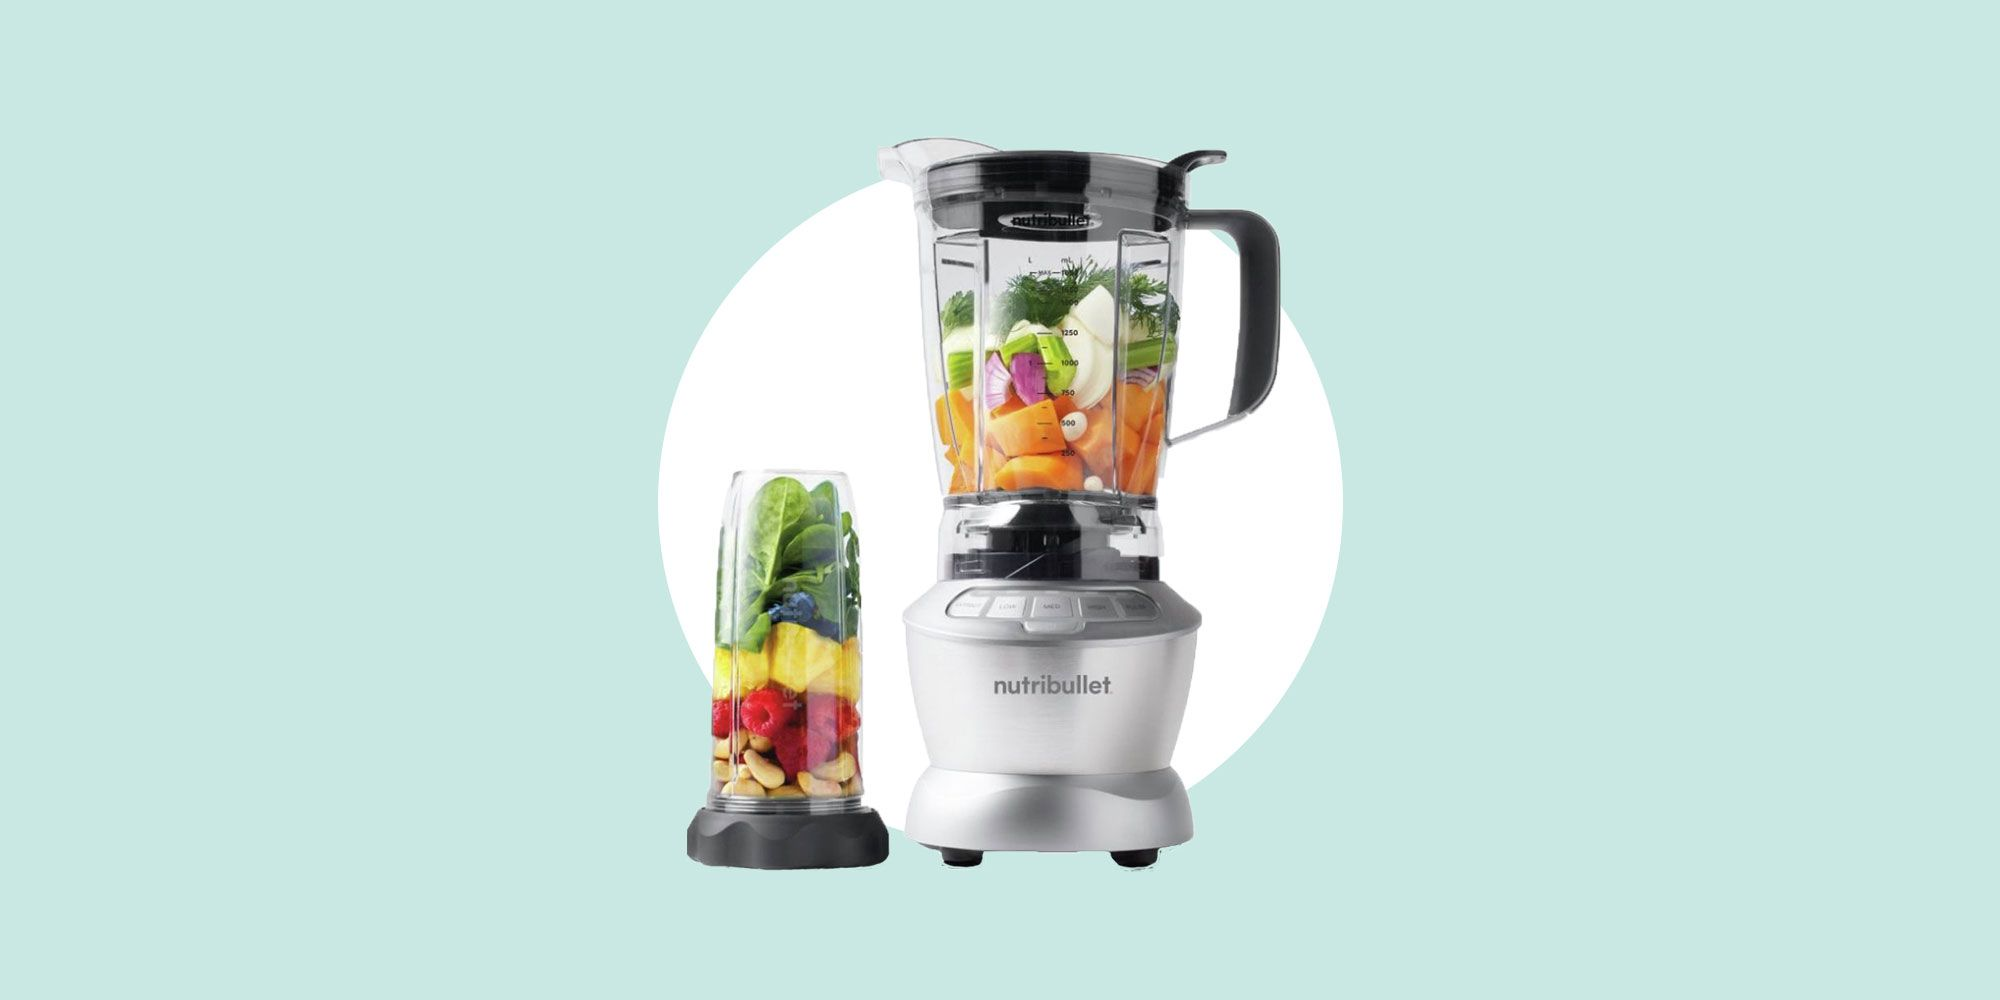 6 best blenders for making smoothies and cocktails